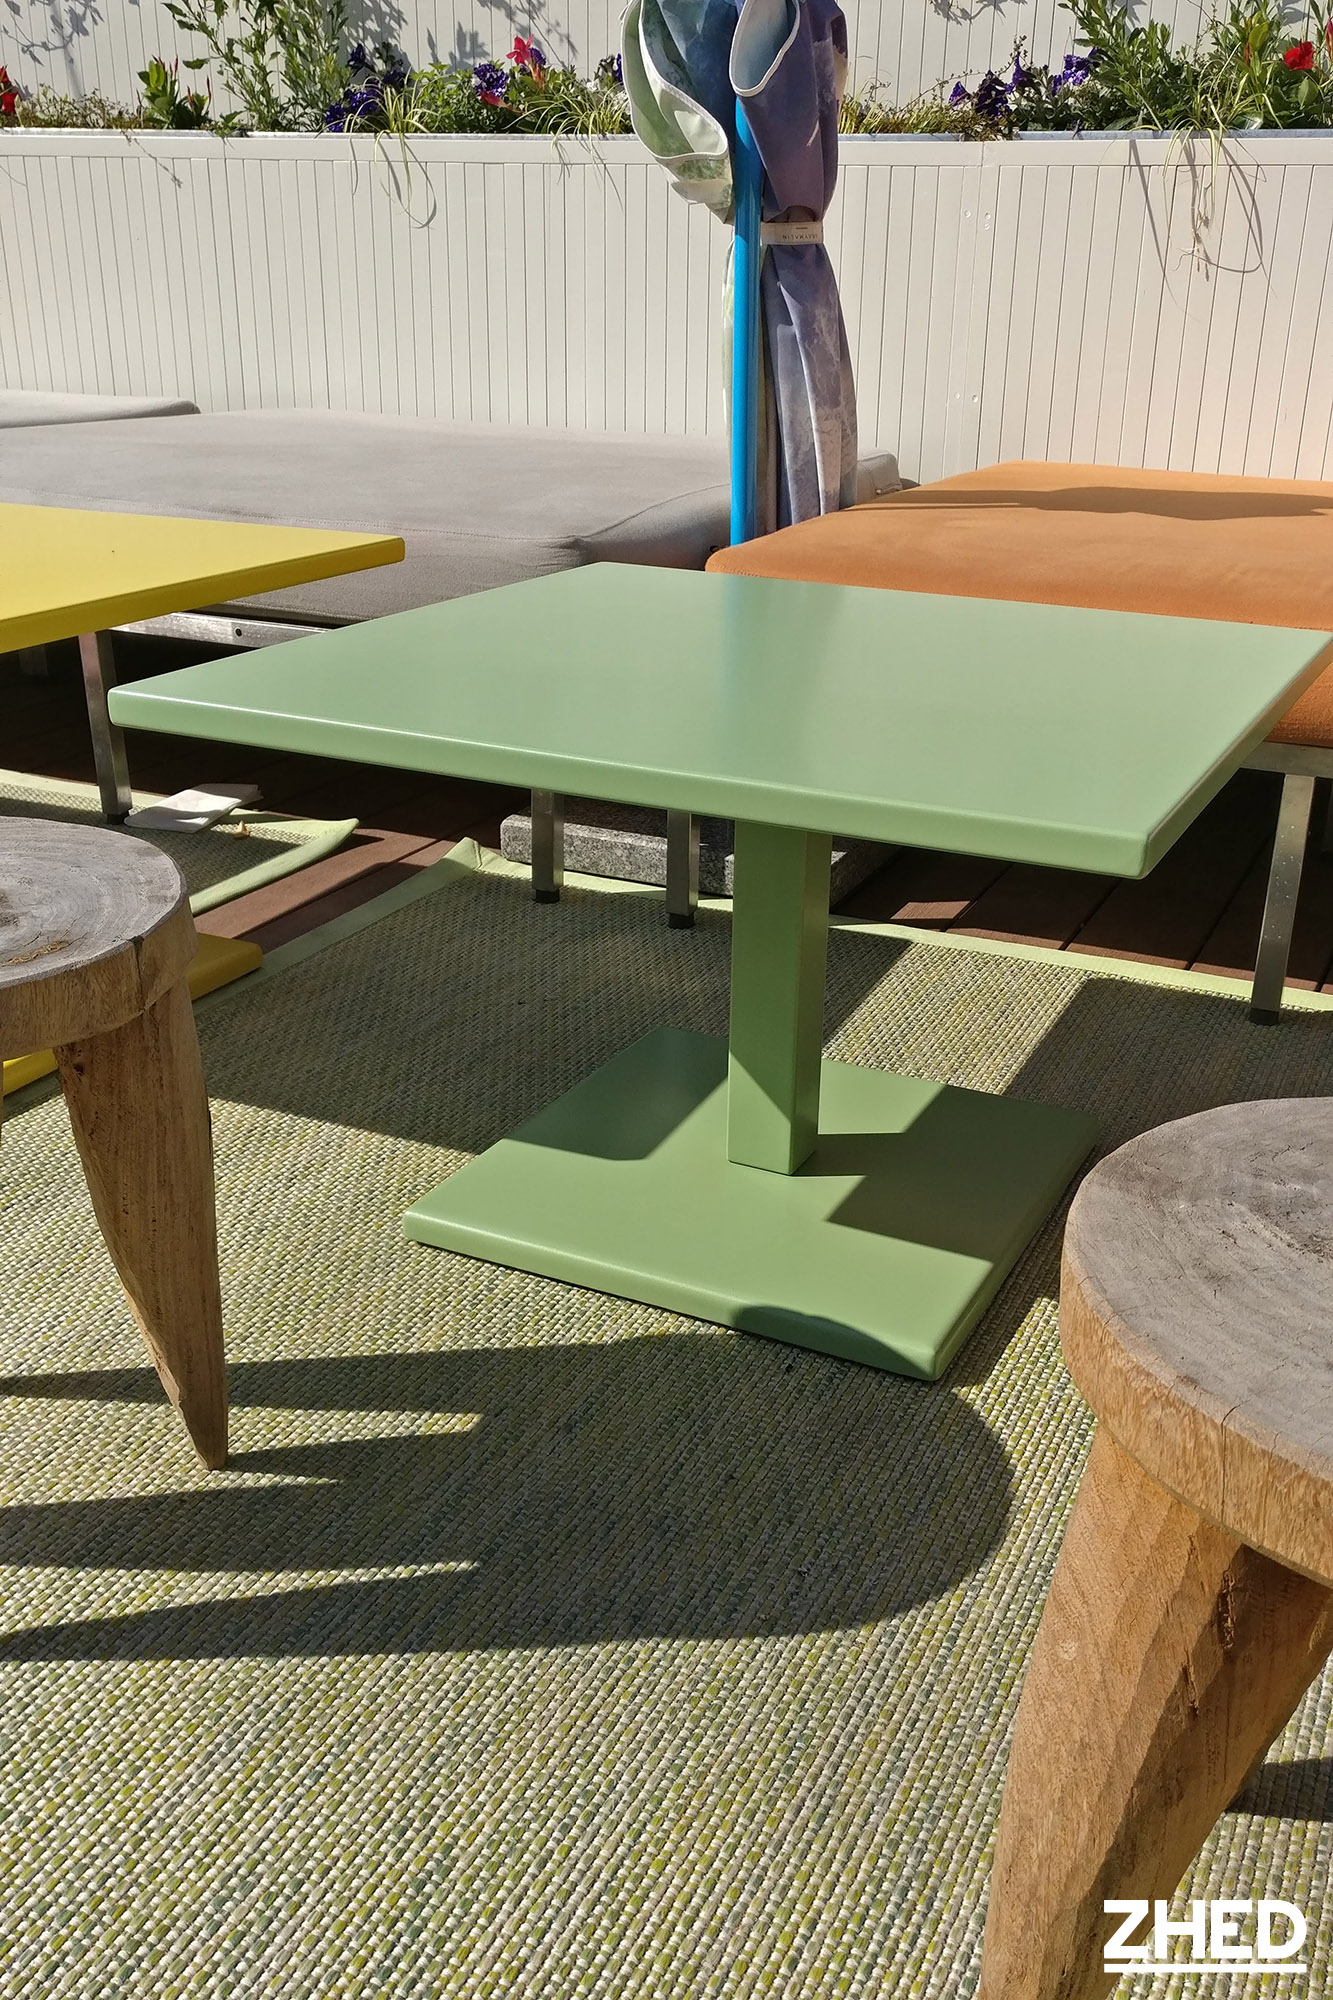 Mama Shelter Table Basse Metal Zhed Jaune Rose Vert 3 Zhed